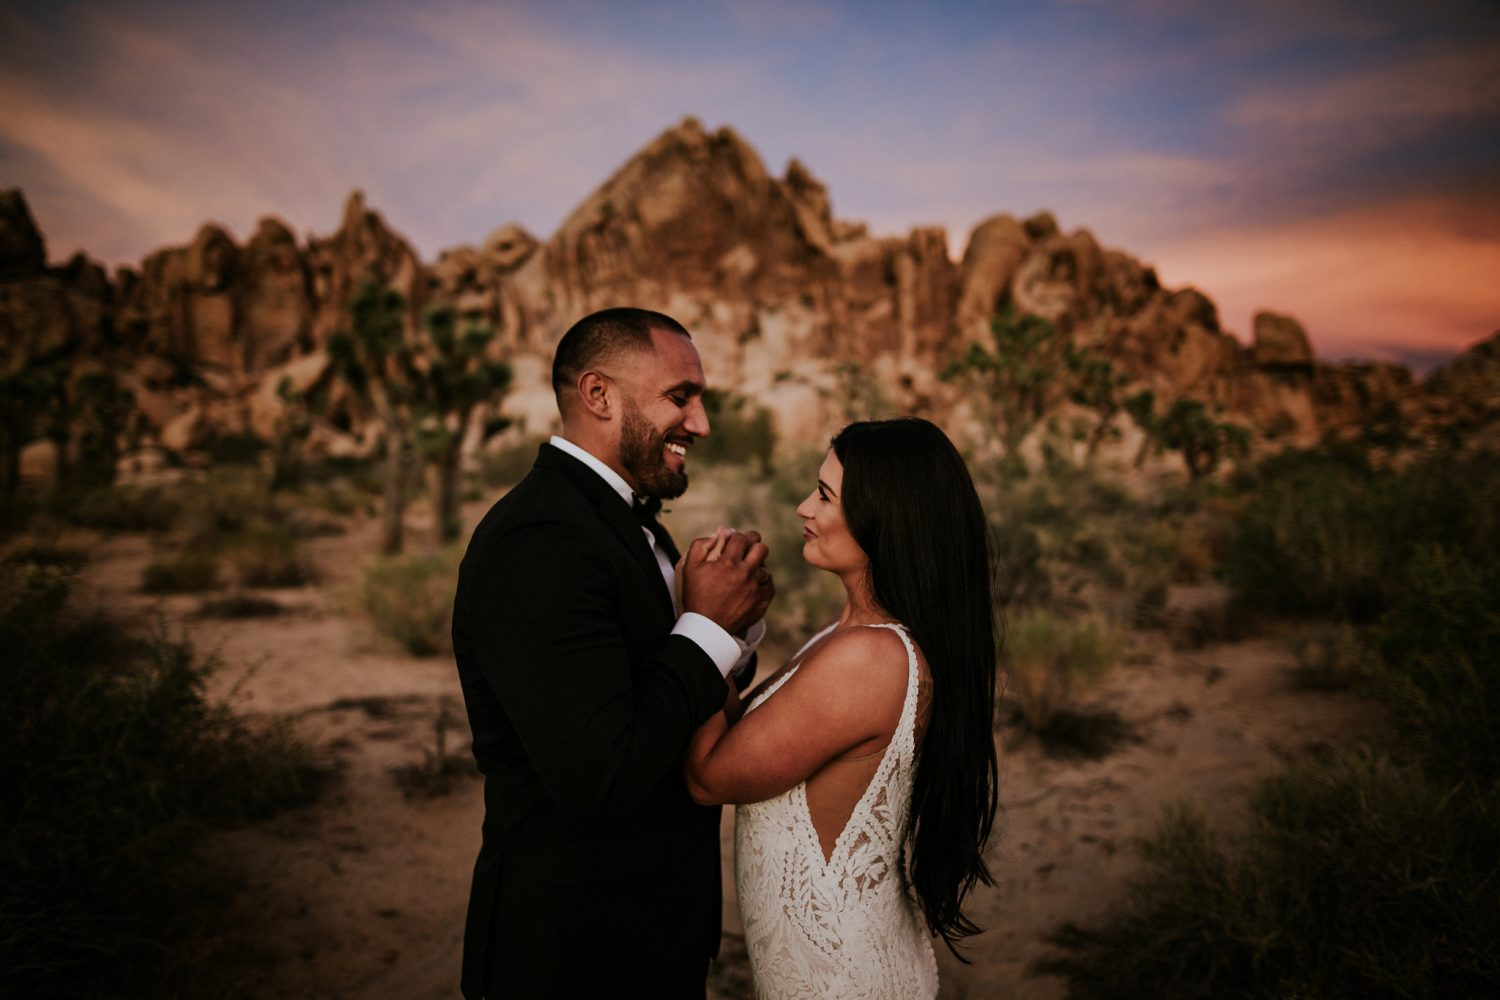 27209Amanda + Hass | Joshua Tree, California | Copley's on Palm Canyon